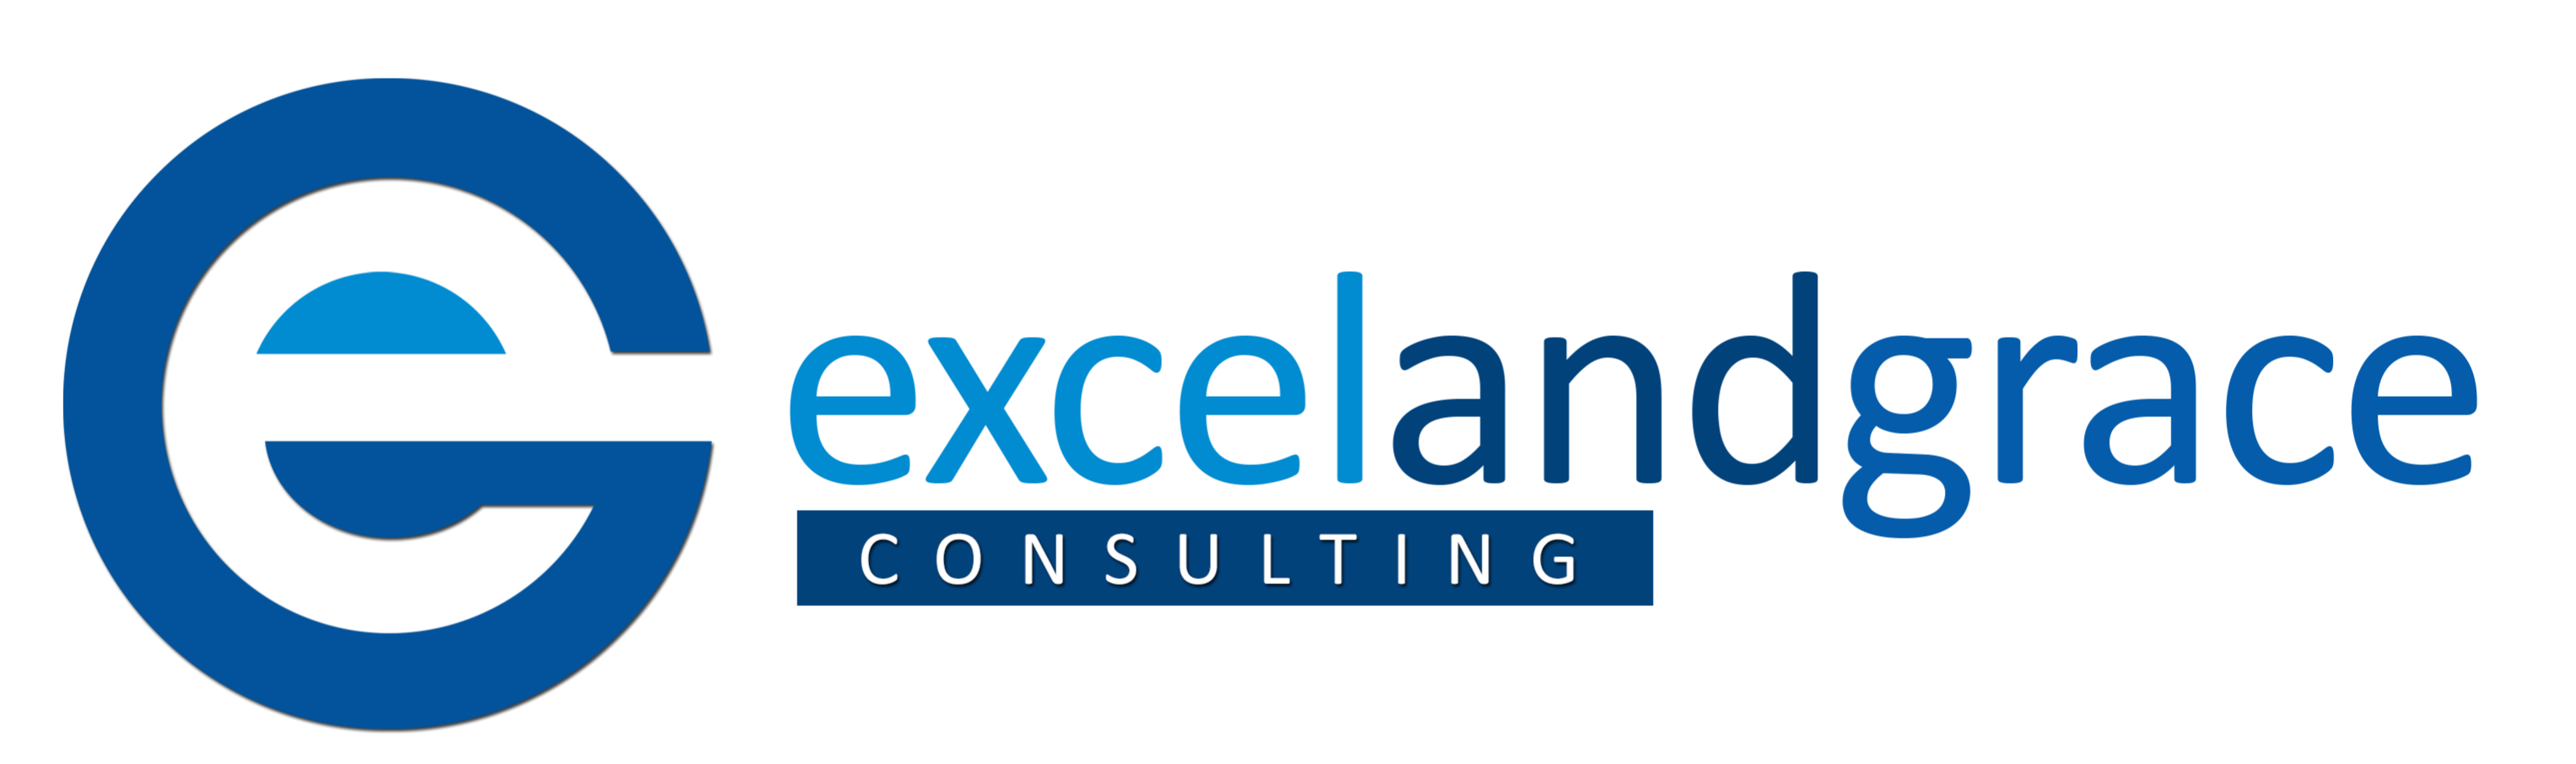 Excel and Grace Consulting